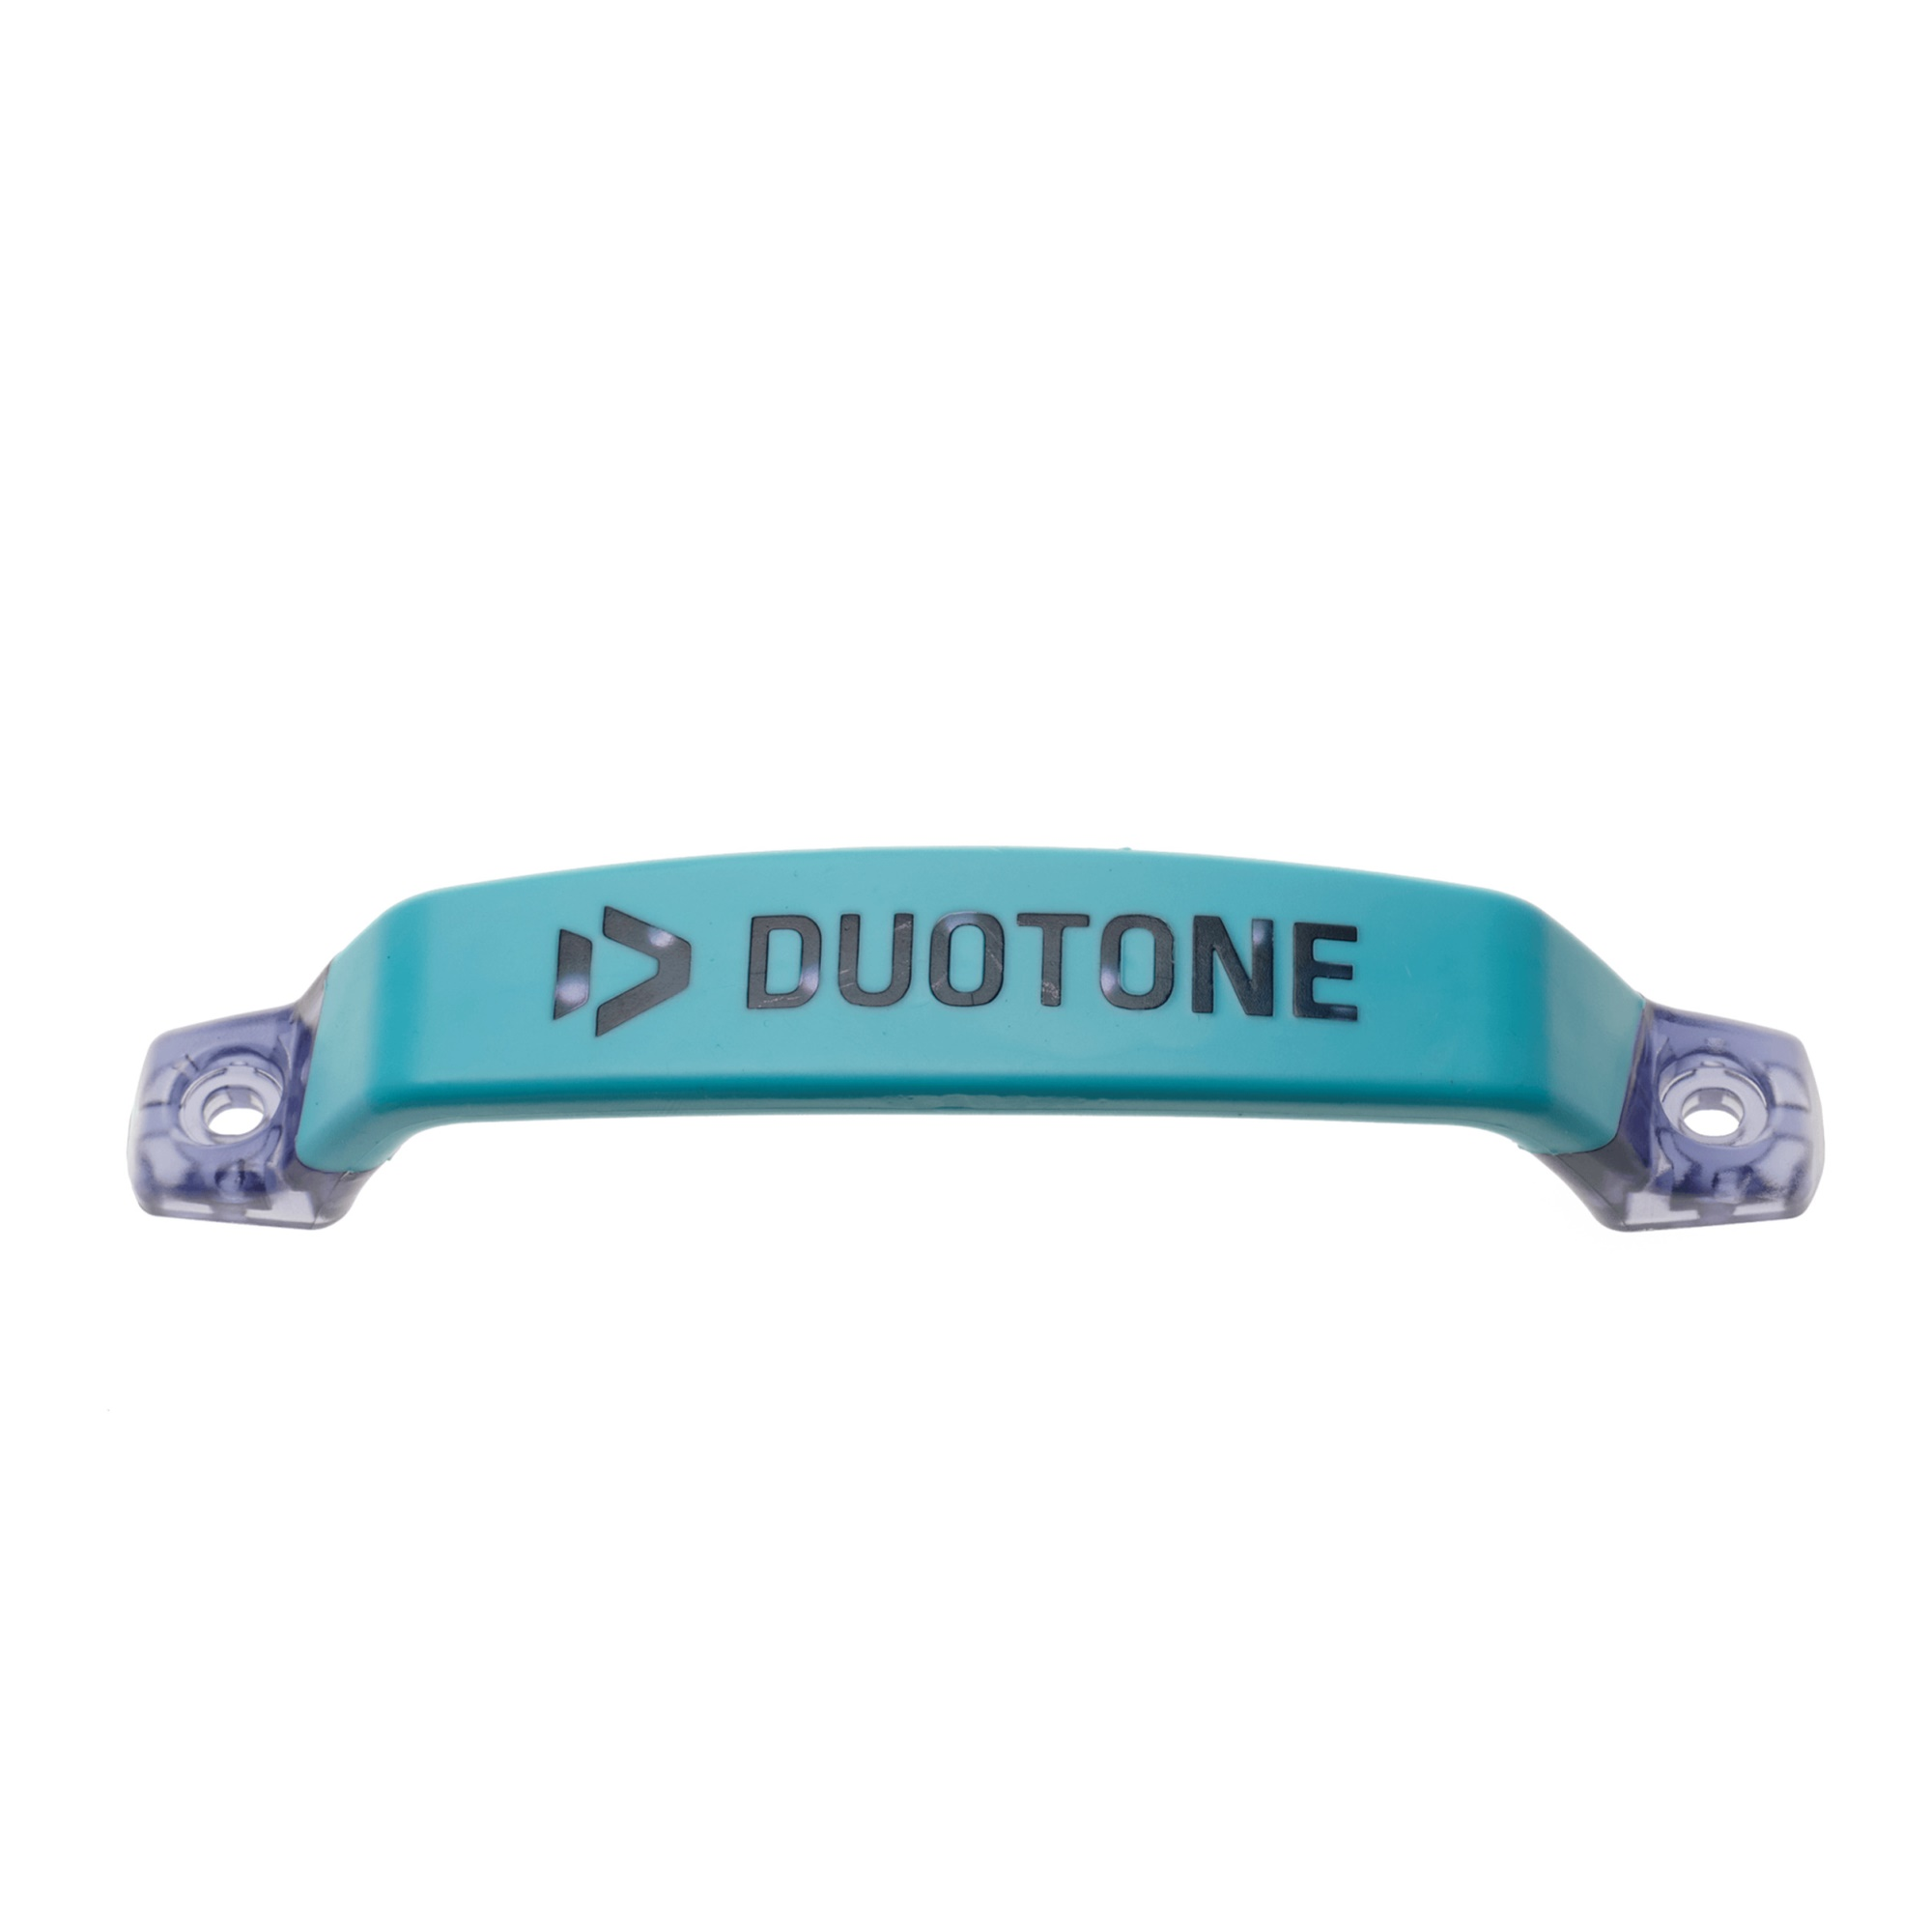 Duotone oder North Grab Handle - Griff für Kiteboards (Grabhandle)